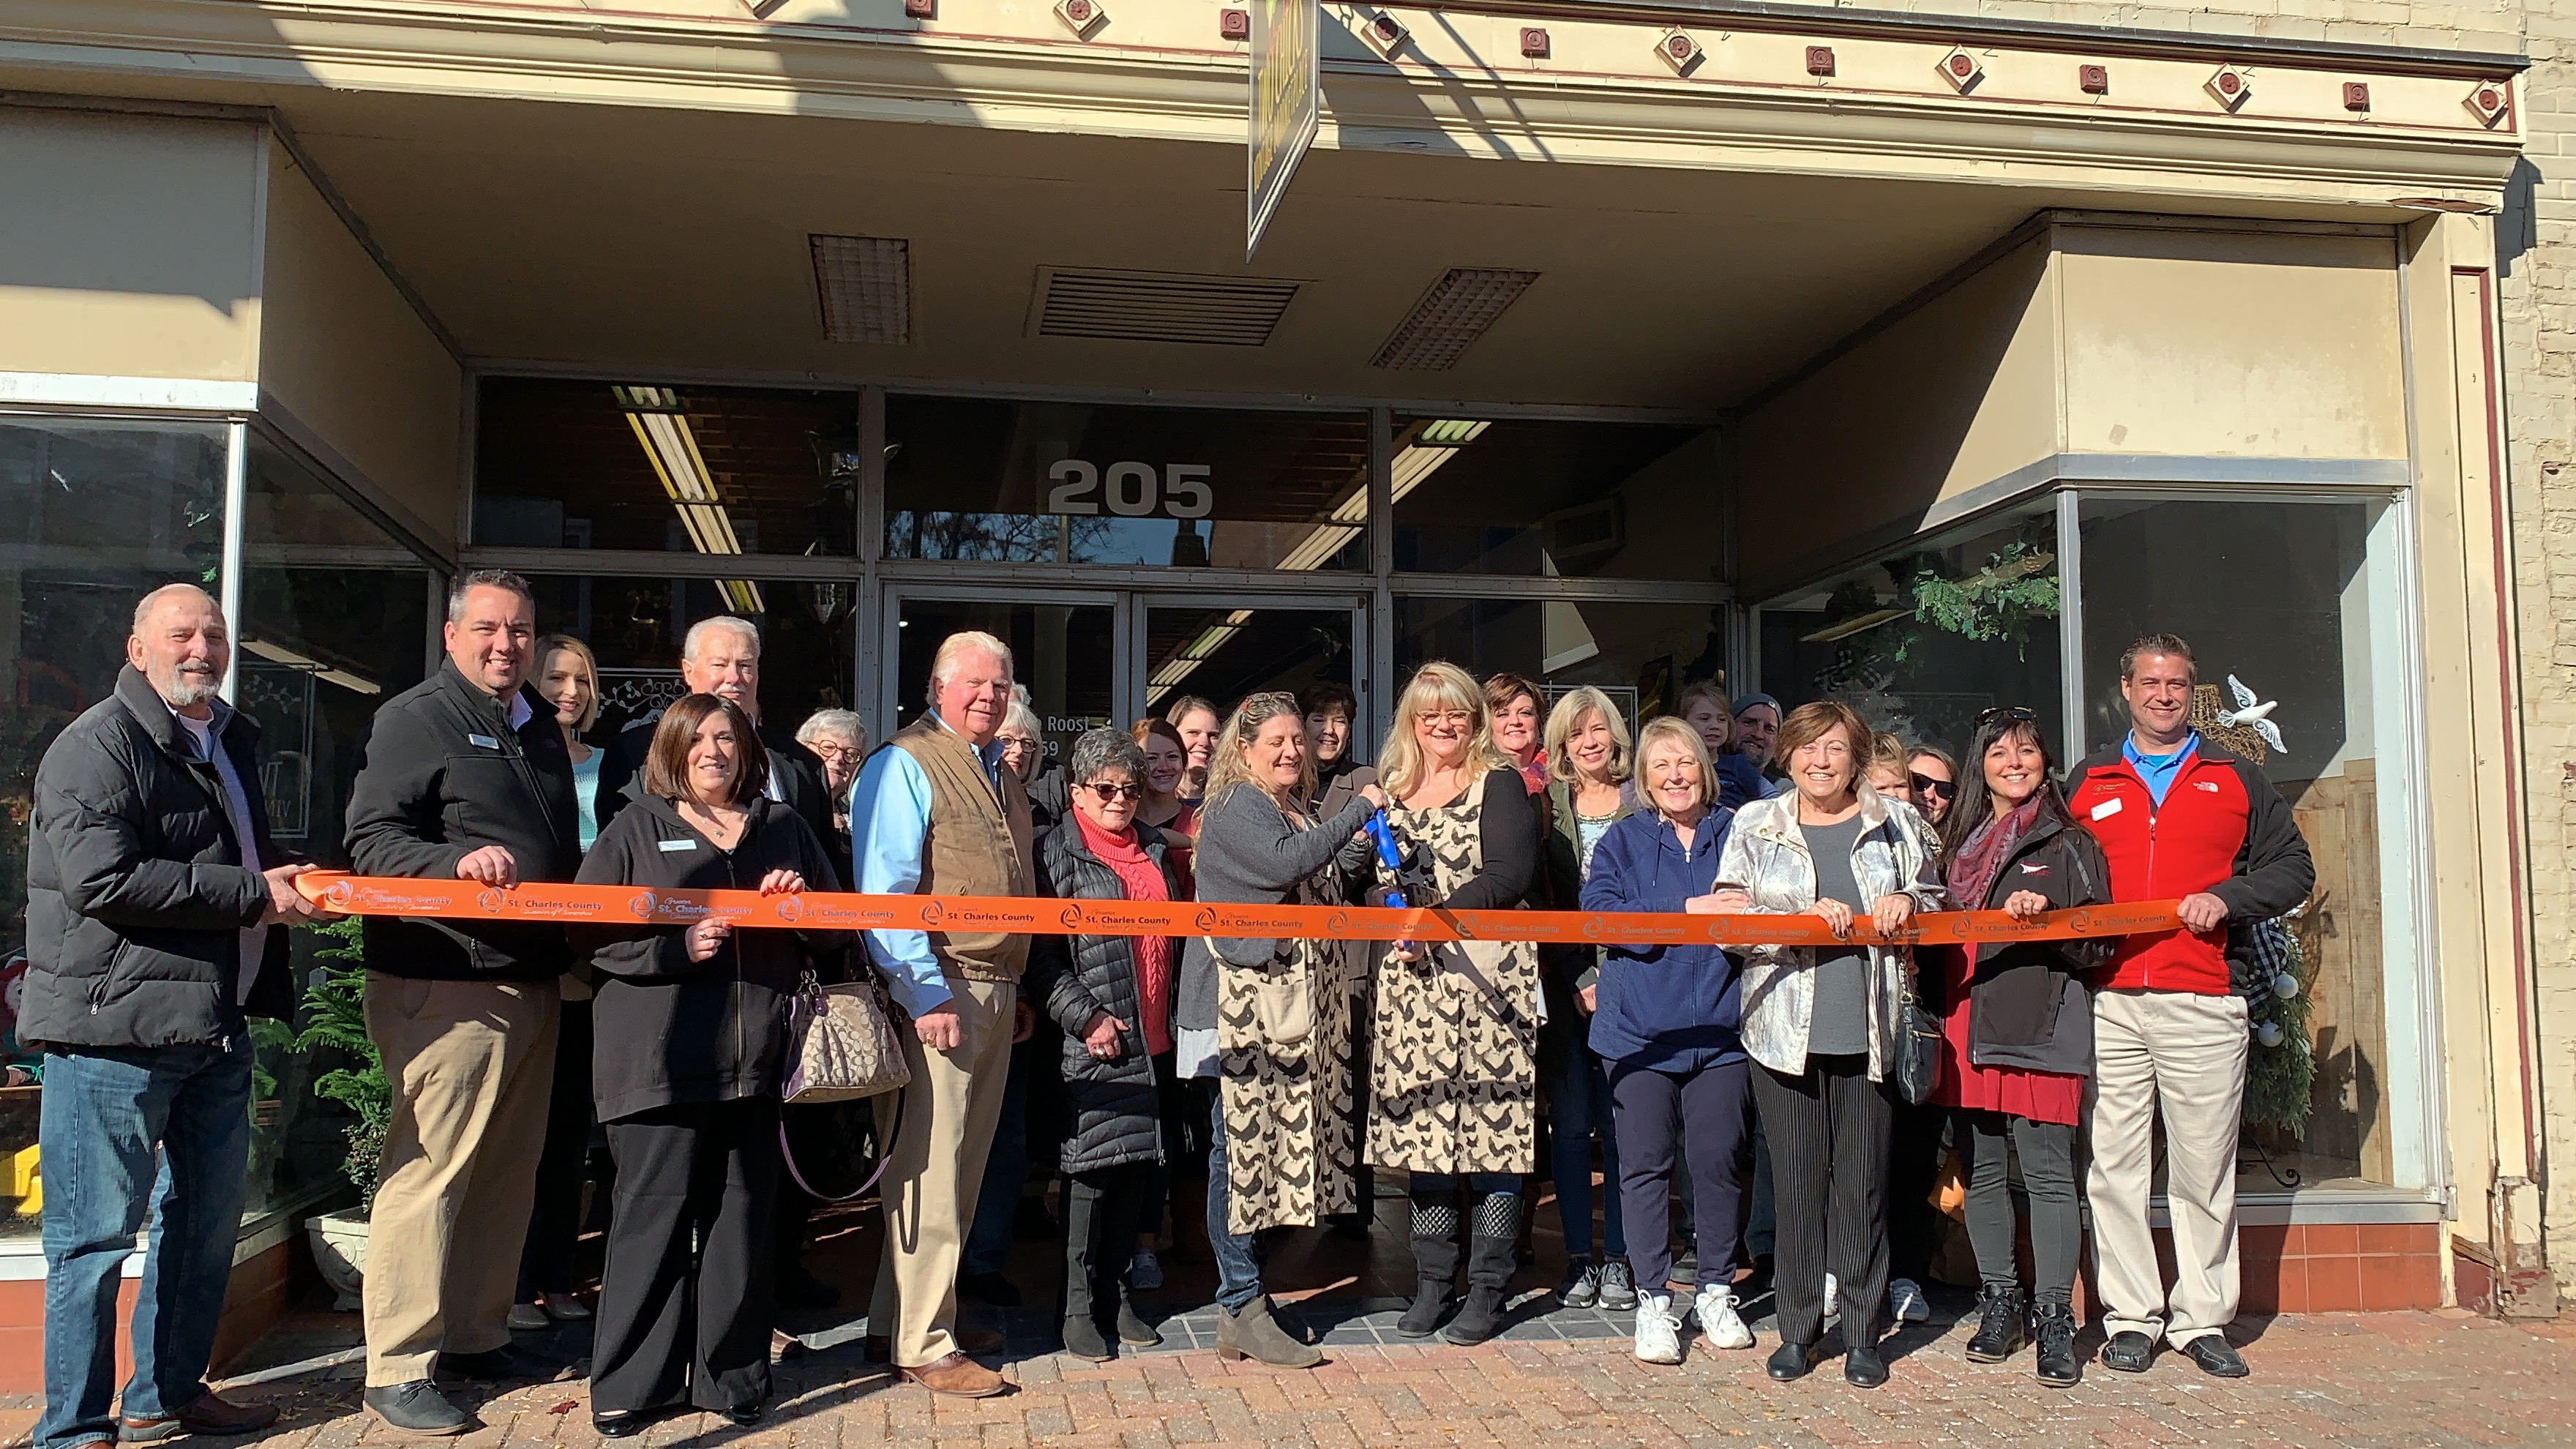 Two Chicks Vintage Marketplace Celebrates  Grand Opening with Ribbon Cutting